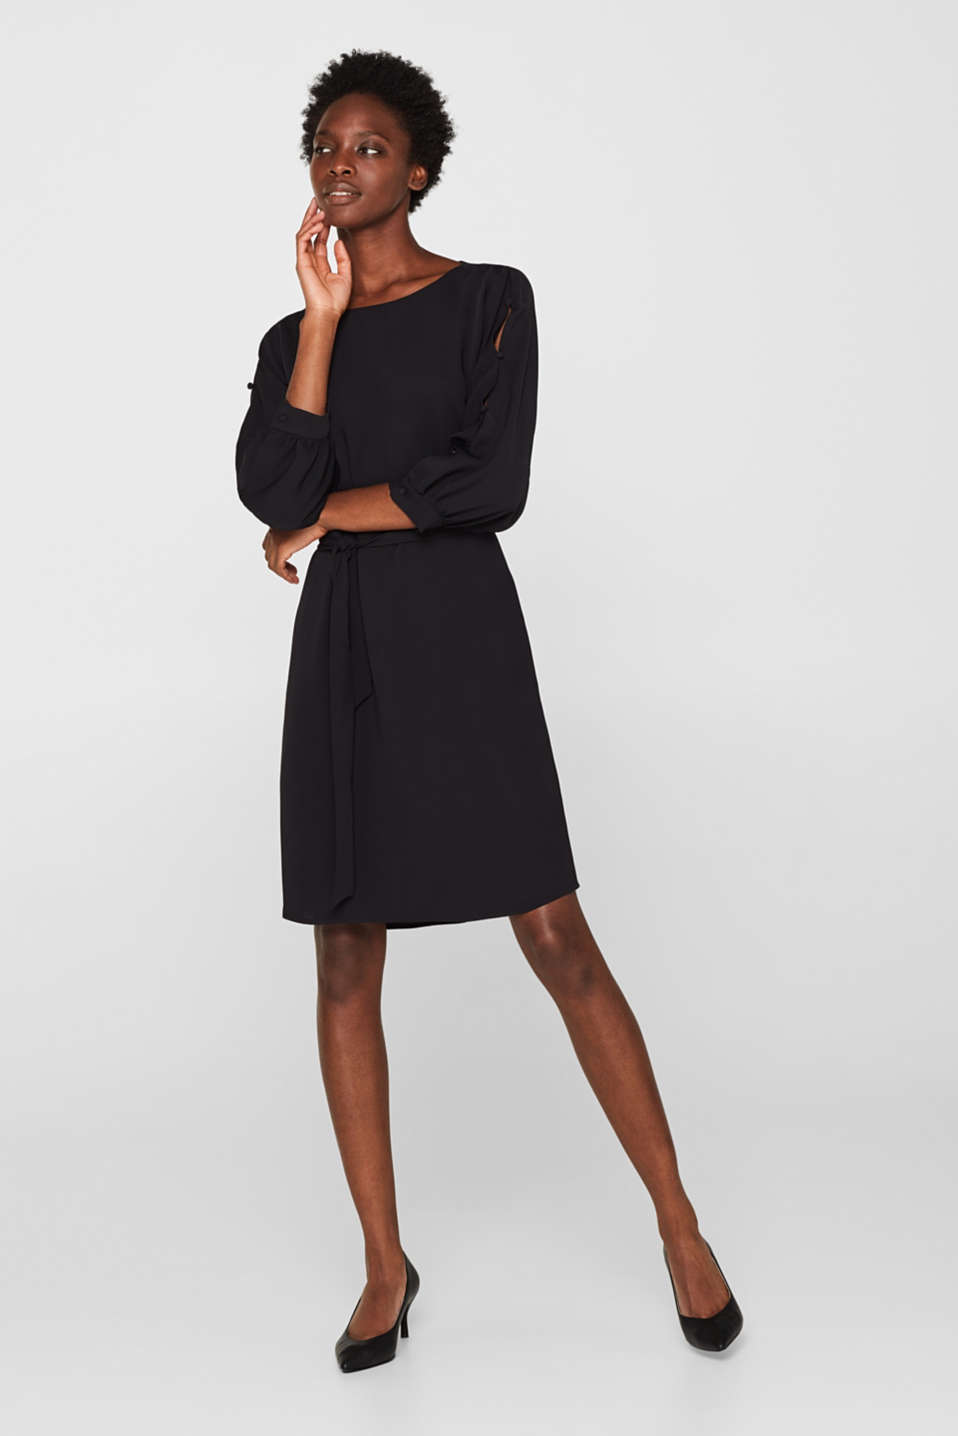 Woven dress with batwing sleeves and a tie-around belt, BLACK, detail image number 1